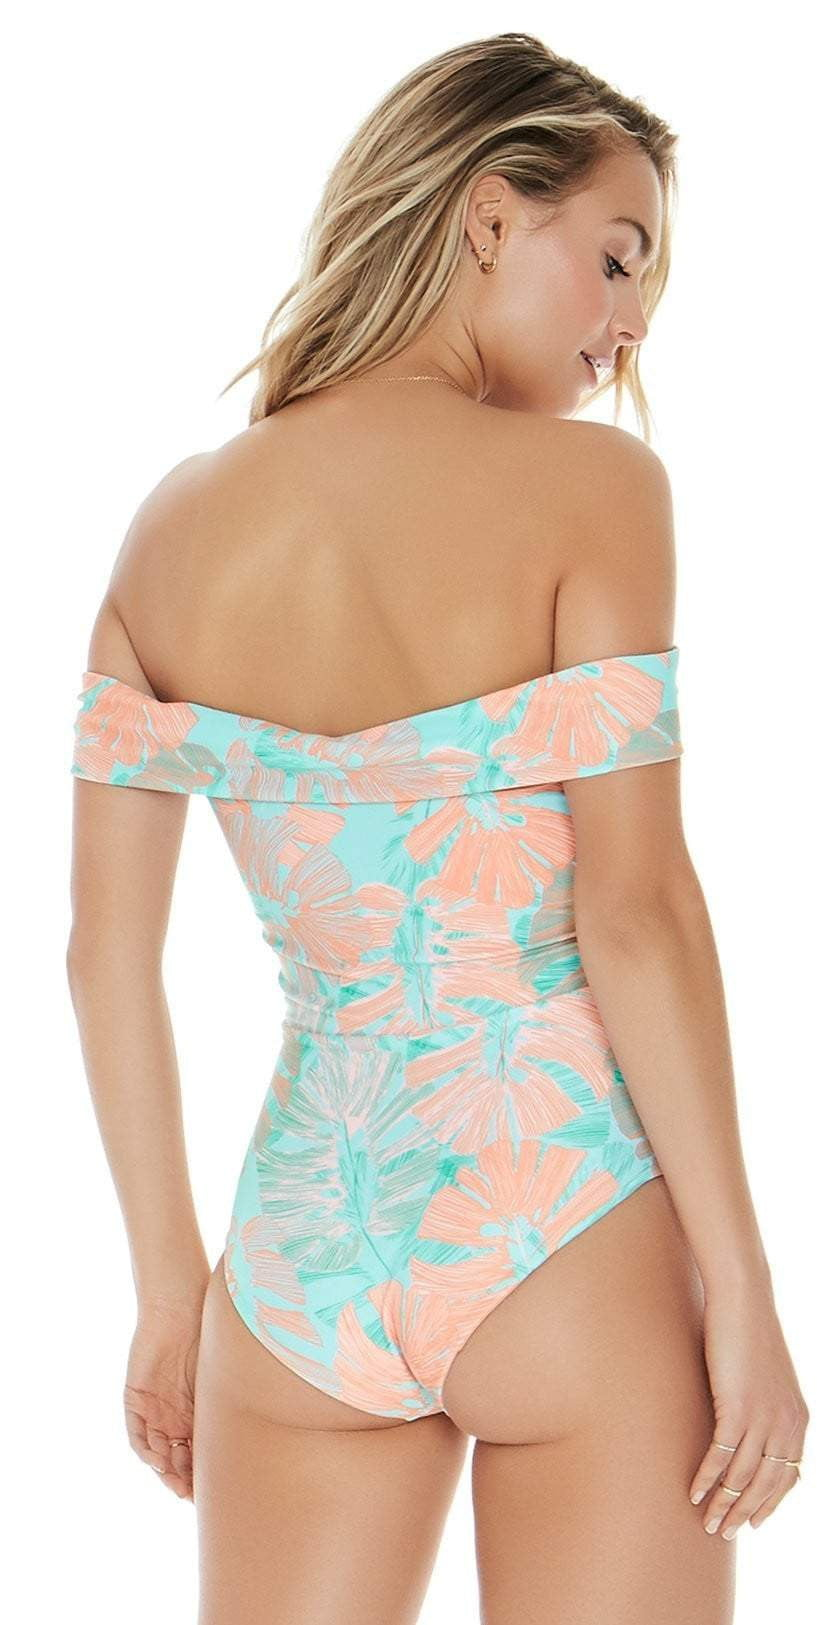 L Space Anja One Piece In Bungalow Palm MTAJMC18-BGP: